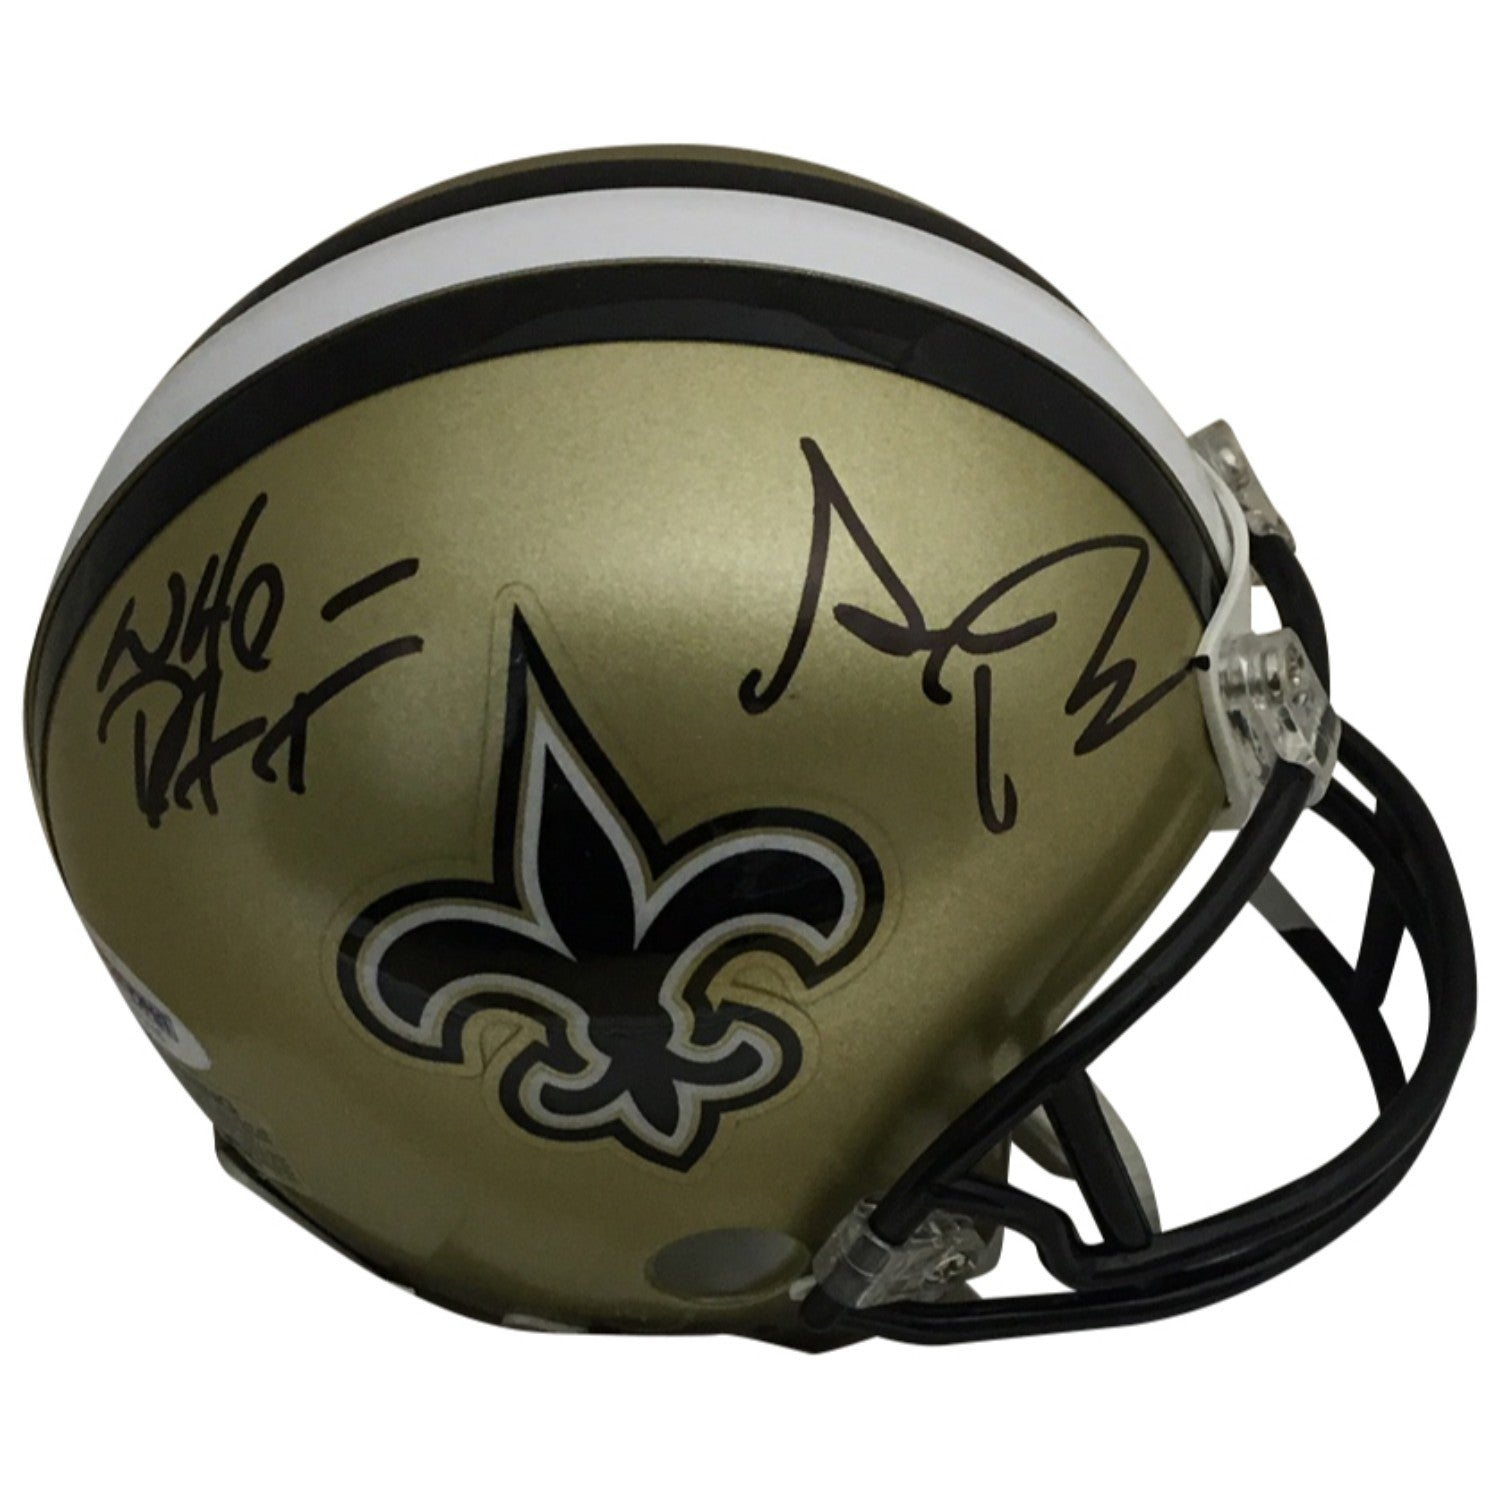 678af5dc4 Sean Payton Autographed New Orleans Saints Signed Football Mini Helmet WHO  DAT PSA DNA COA-